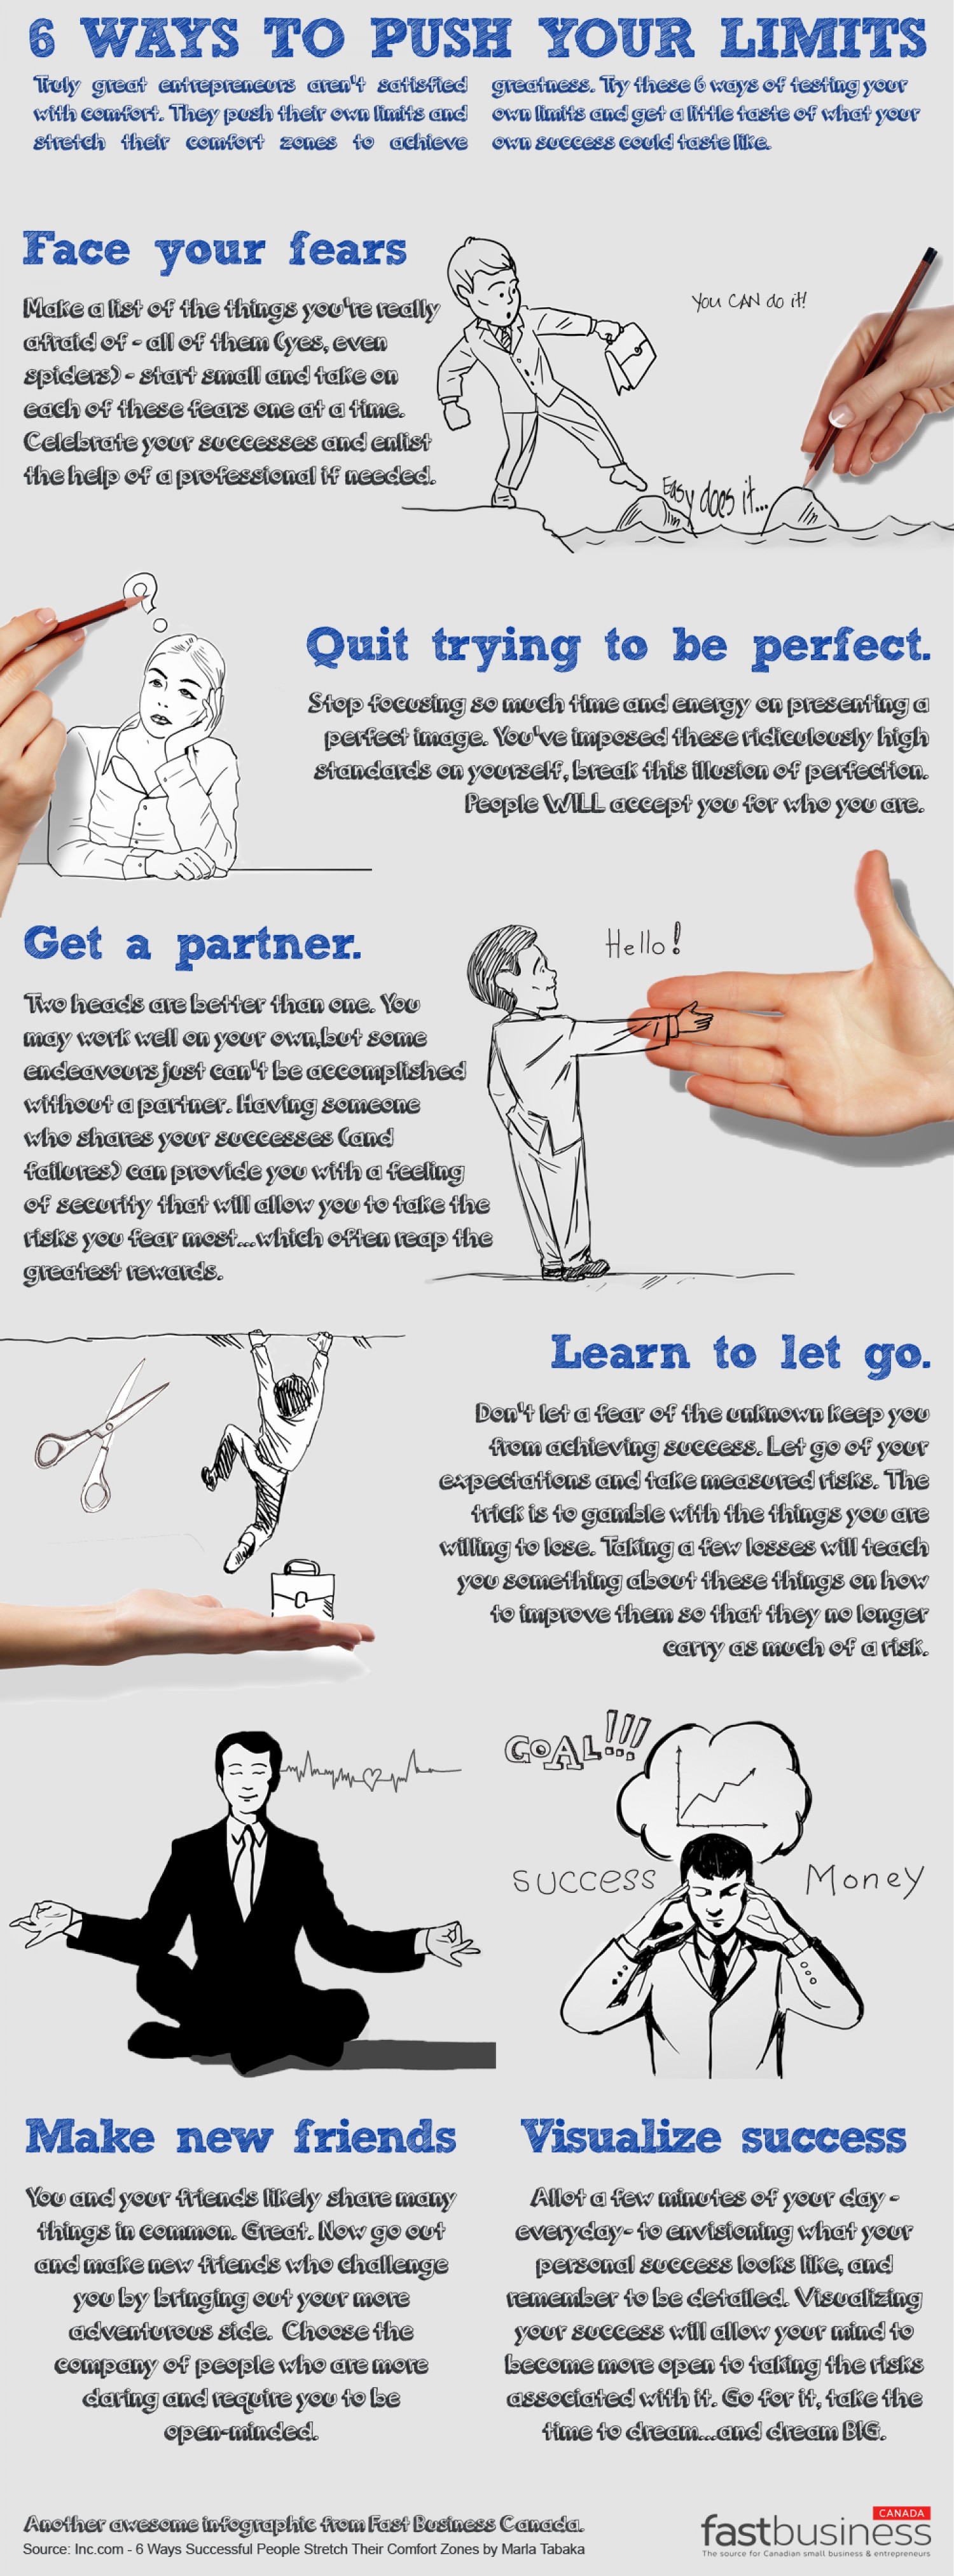 6 Ways Great Entrepreneurs Push Their Limits And How It Helps Them Succeed Infographic